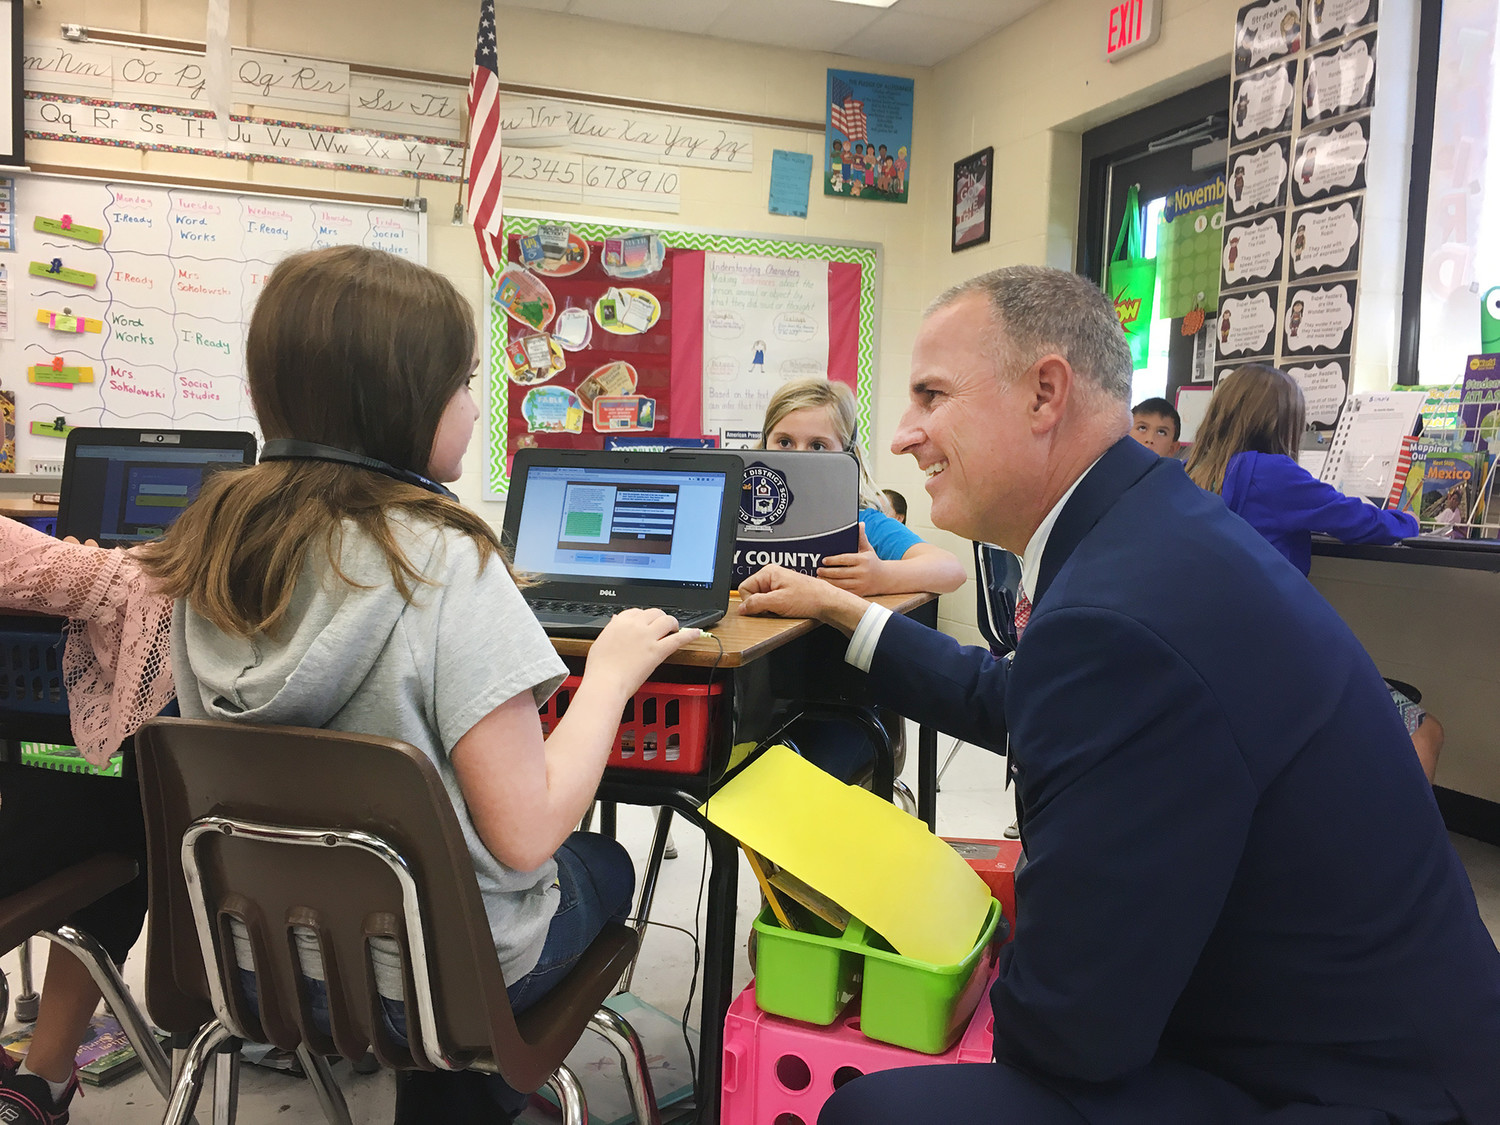 Clay County District Schools Superintendent Addison Davis talks with a student at Tynes Elementary School last week while touring the school to observe technology improvements implemented by the district.